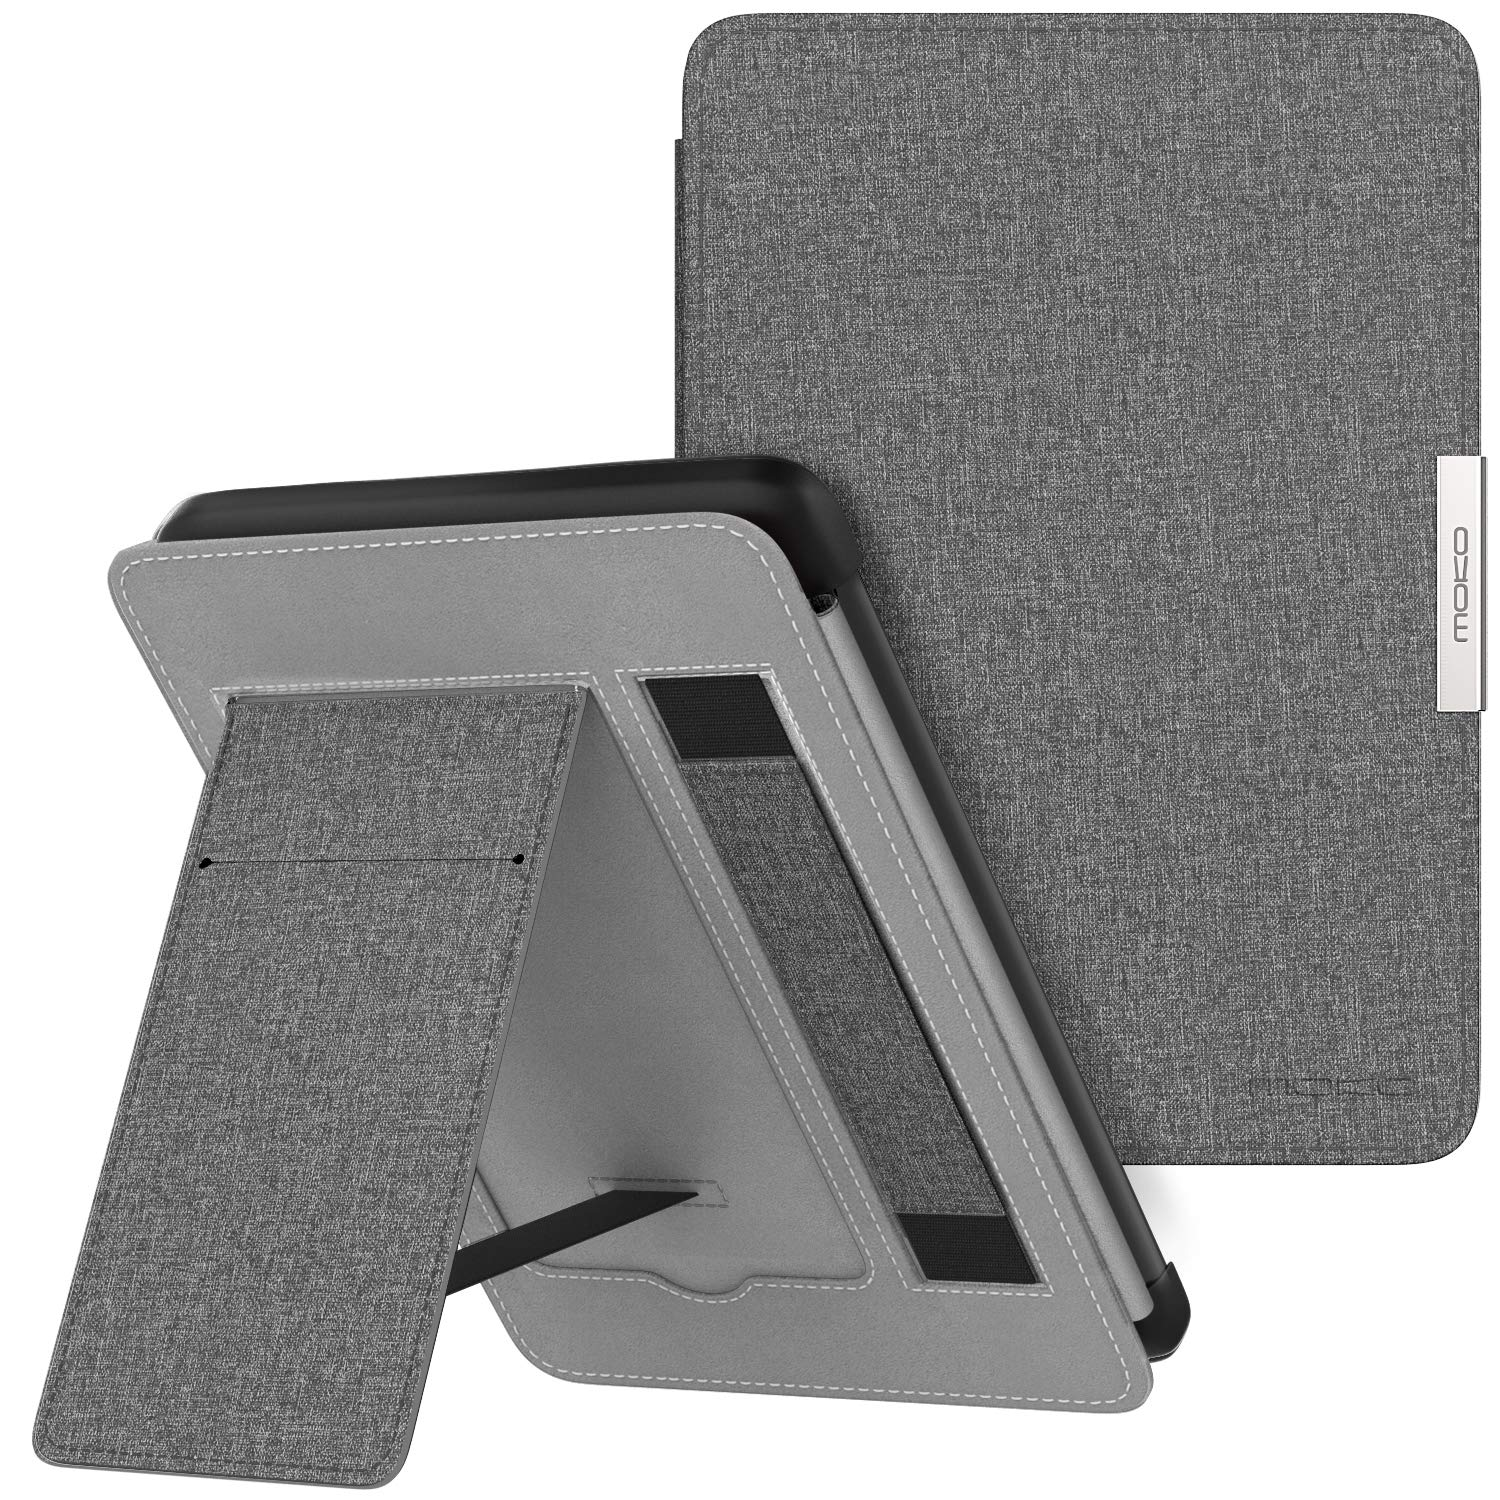 Mo Ko Case For Kindle Paperwhite, Premium Pu Leather Pc Hard Shell Smart Stand Cover Fits All Paperwhite Generations Prior To 2018 (Will Not Fit All New Paperwhite 10th Generation), Gray by Mo Ko